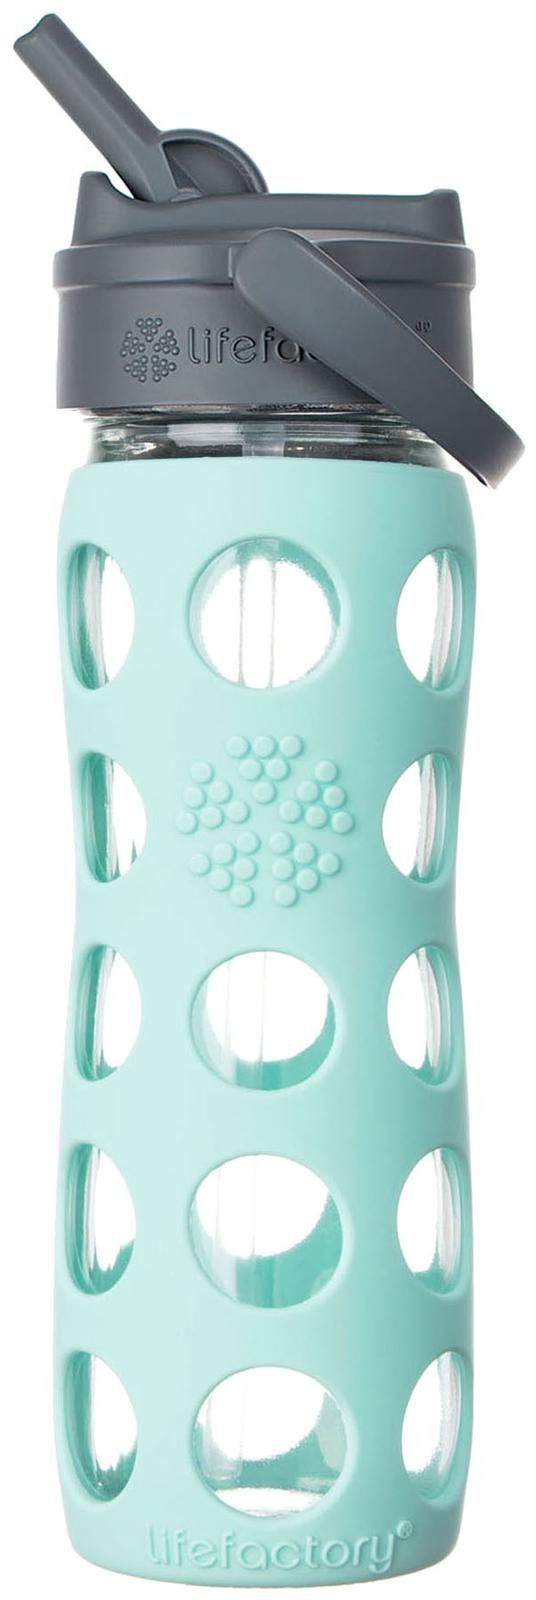 Lifefactory Glass Bottle with Straw Cap or Flip Cap - Turquoise - 16 oz (amazon or bed bath & beyond with coupon)